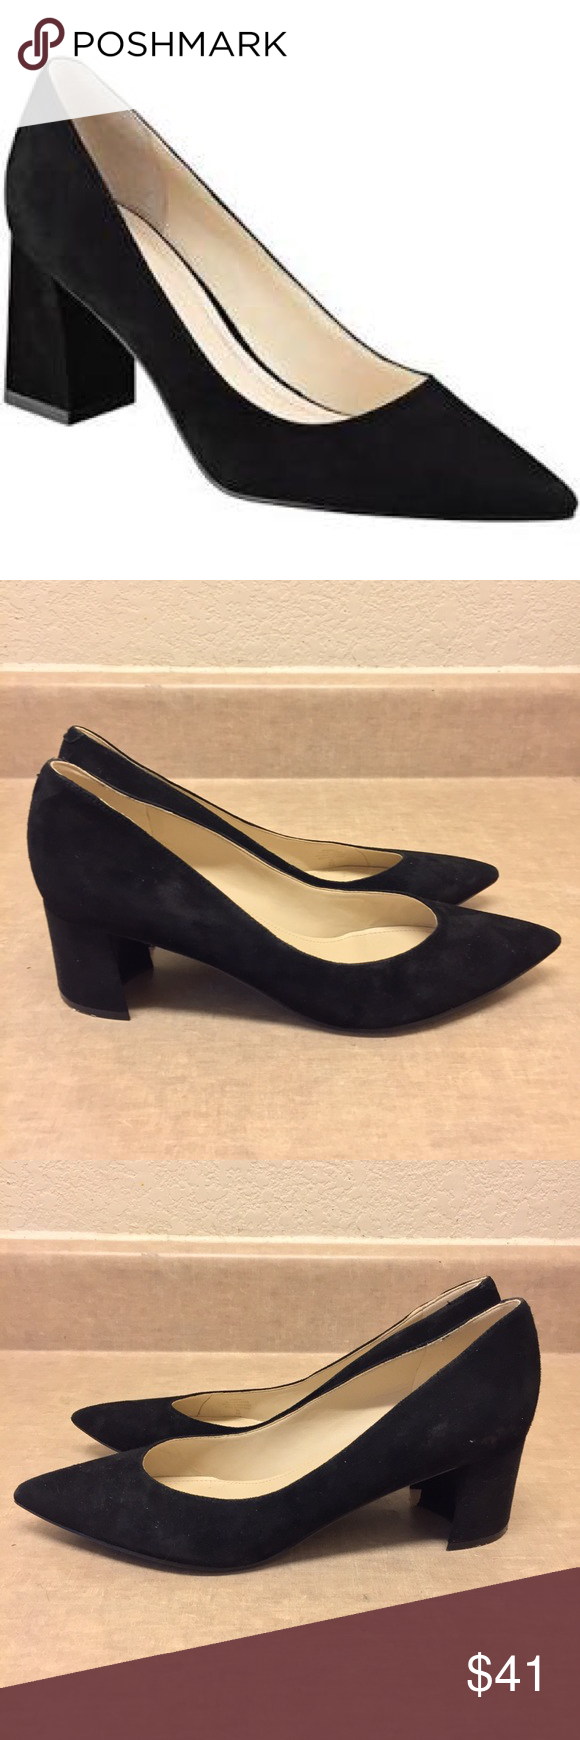 dc6cda026b10 👠Marc Fisher Caitlin Pumps👠 Pre-Owned like NEW! Excellent condition. No